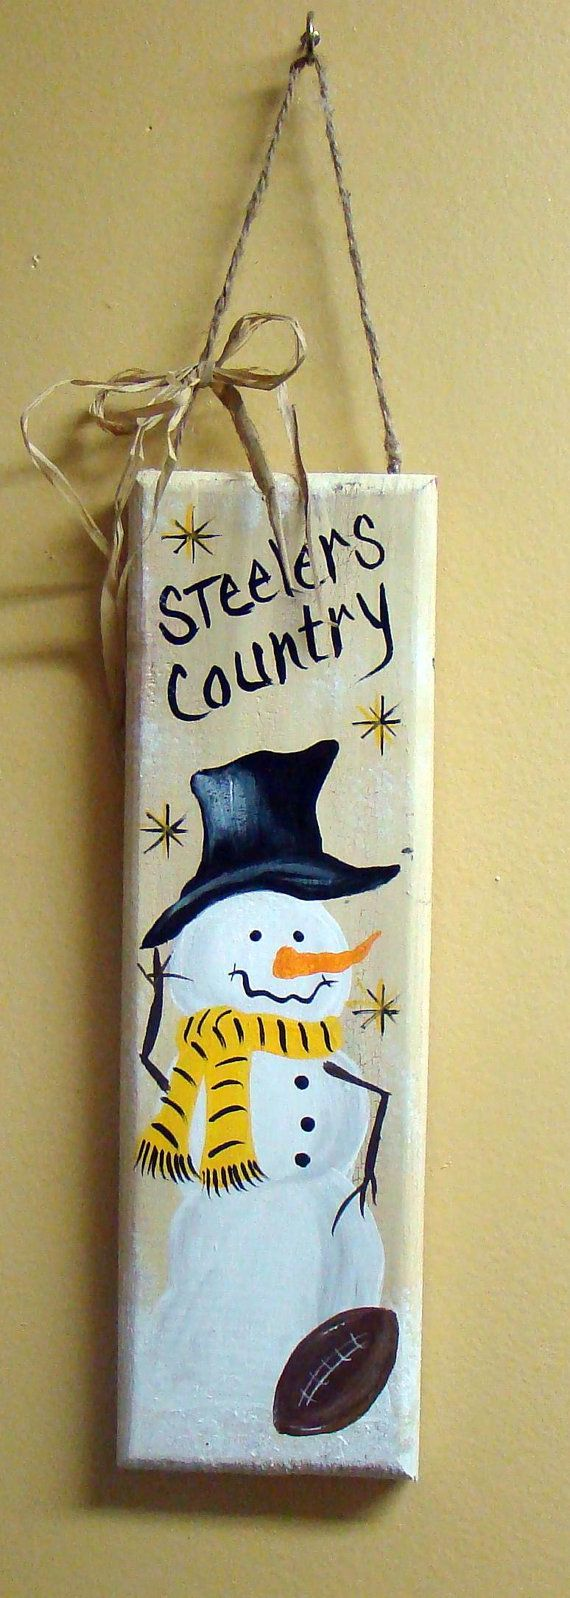 Sports Themed Team Snowman Sign Steelers by CreativeDesigns77, $21.95